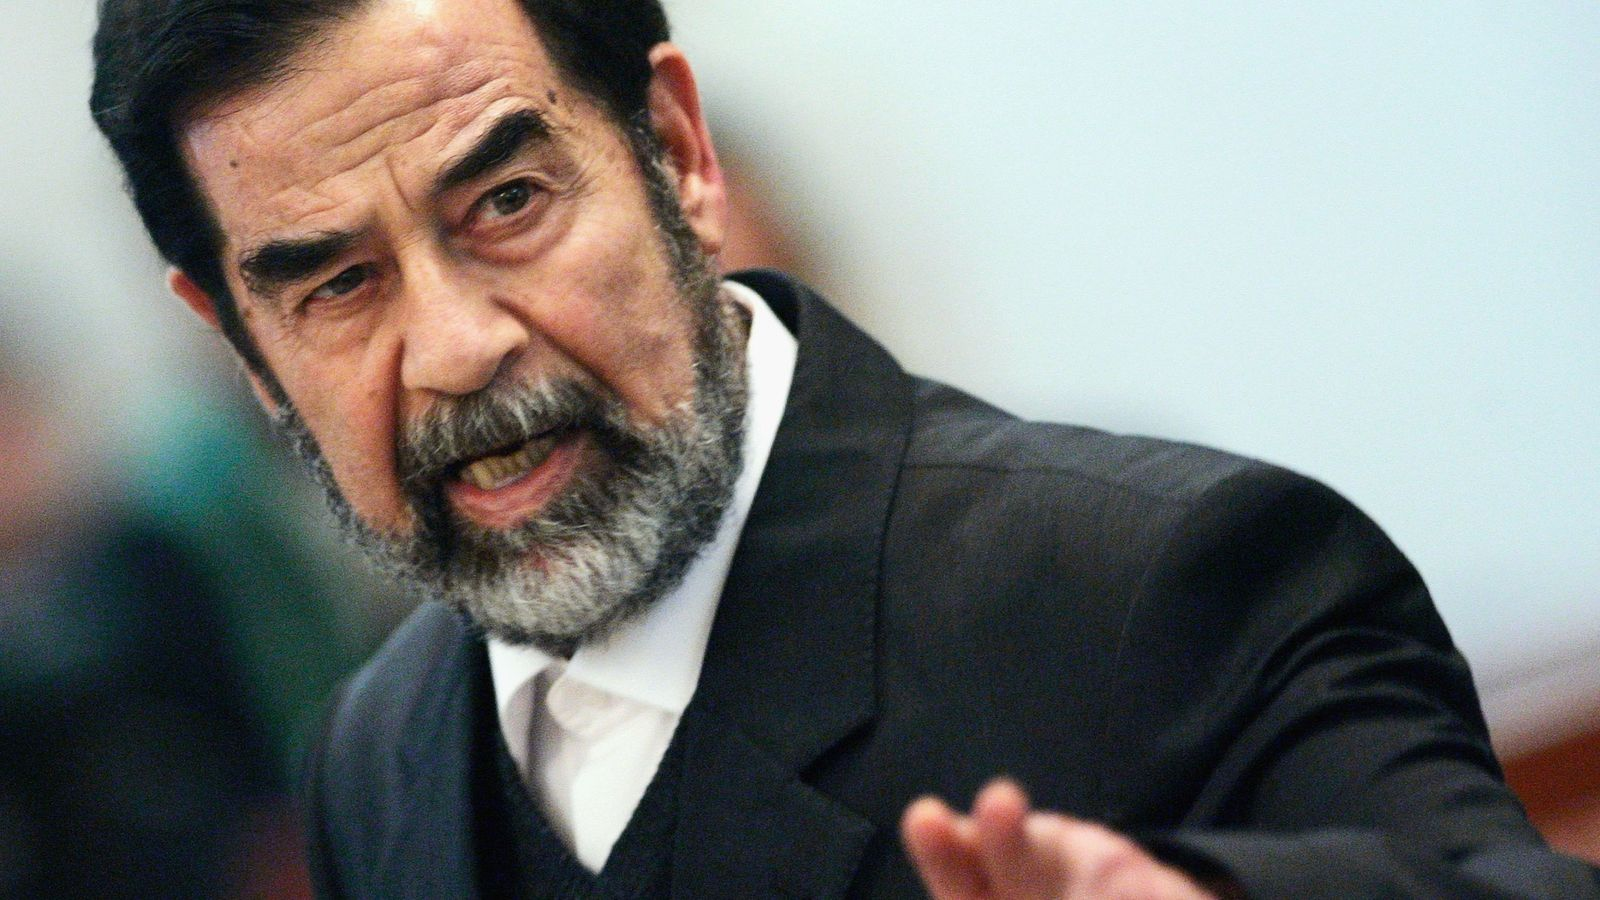 saddam hussein essay The history of saddam hussein and his leadership capabilities started up in small village on the outskirts of the city of tikrit (gbutt [7]) where he was born in 1937 and grew up facing the.